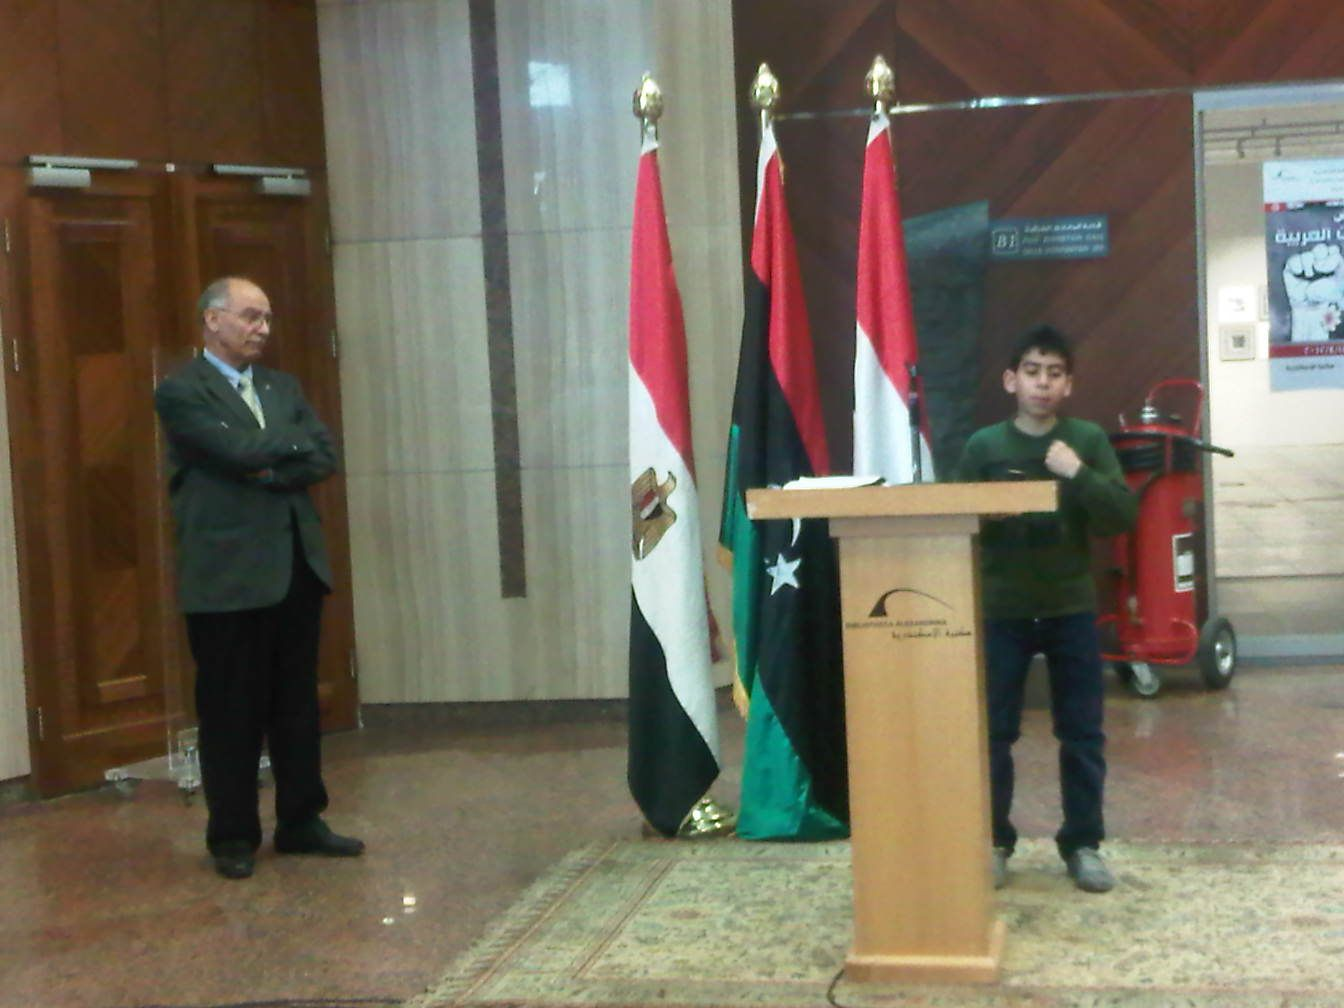 Omar samir recited apoem in the opening ceremony of the exhibition